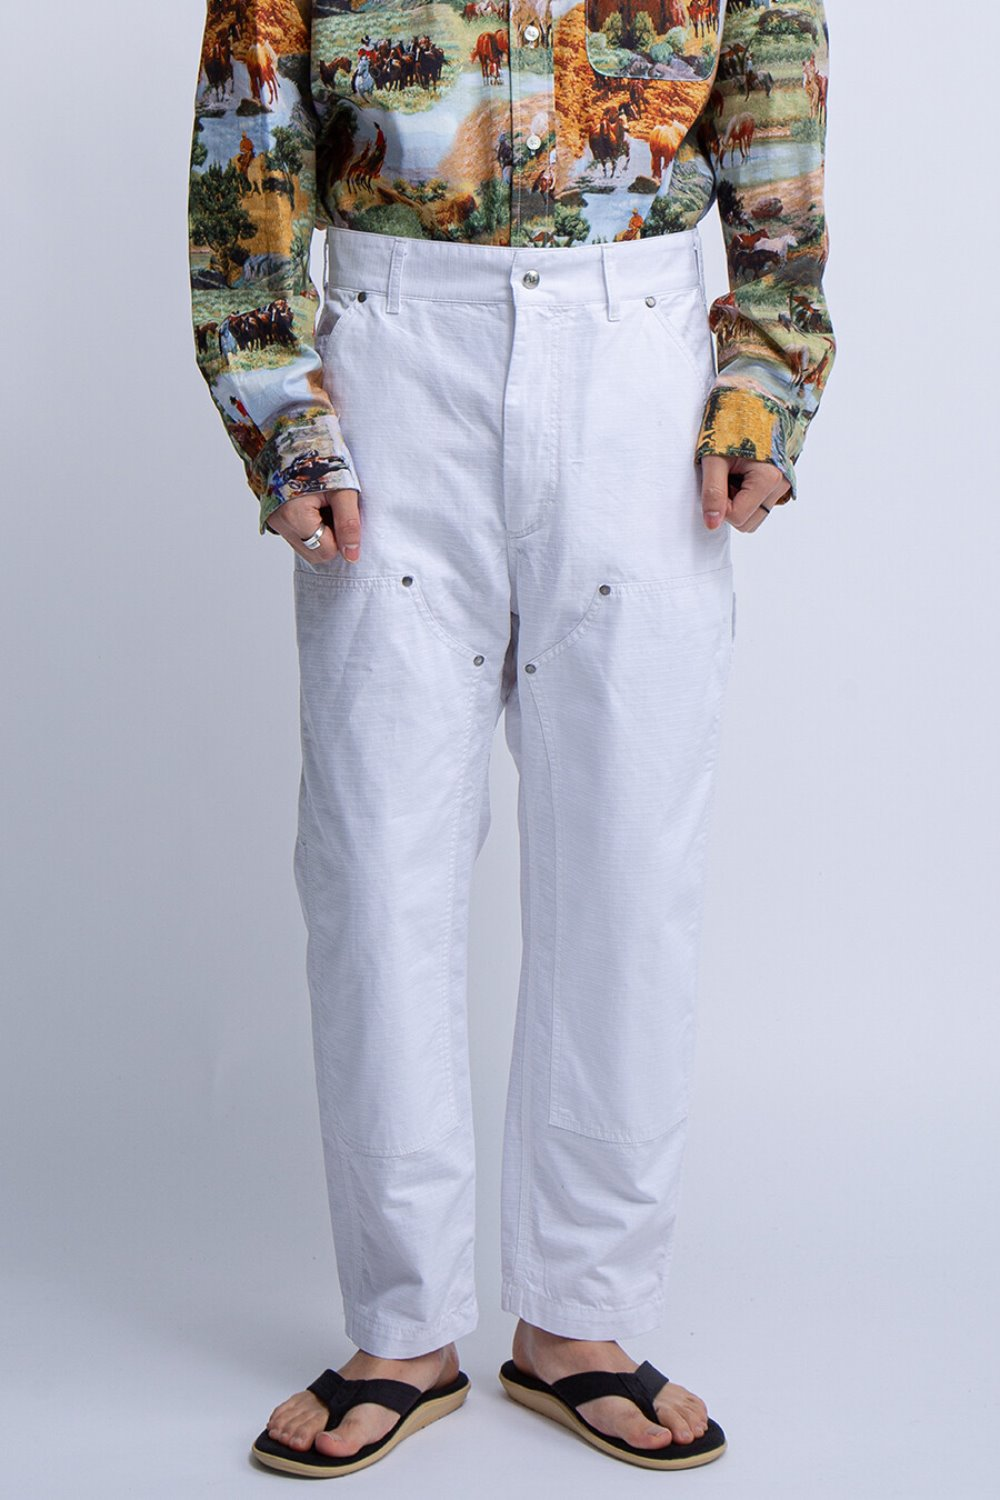 PT PANT WHITE COTTON RIPSTOP